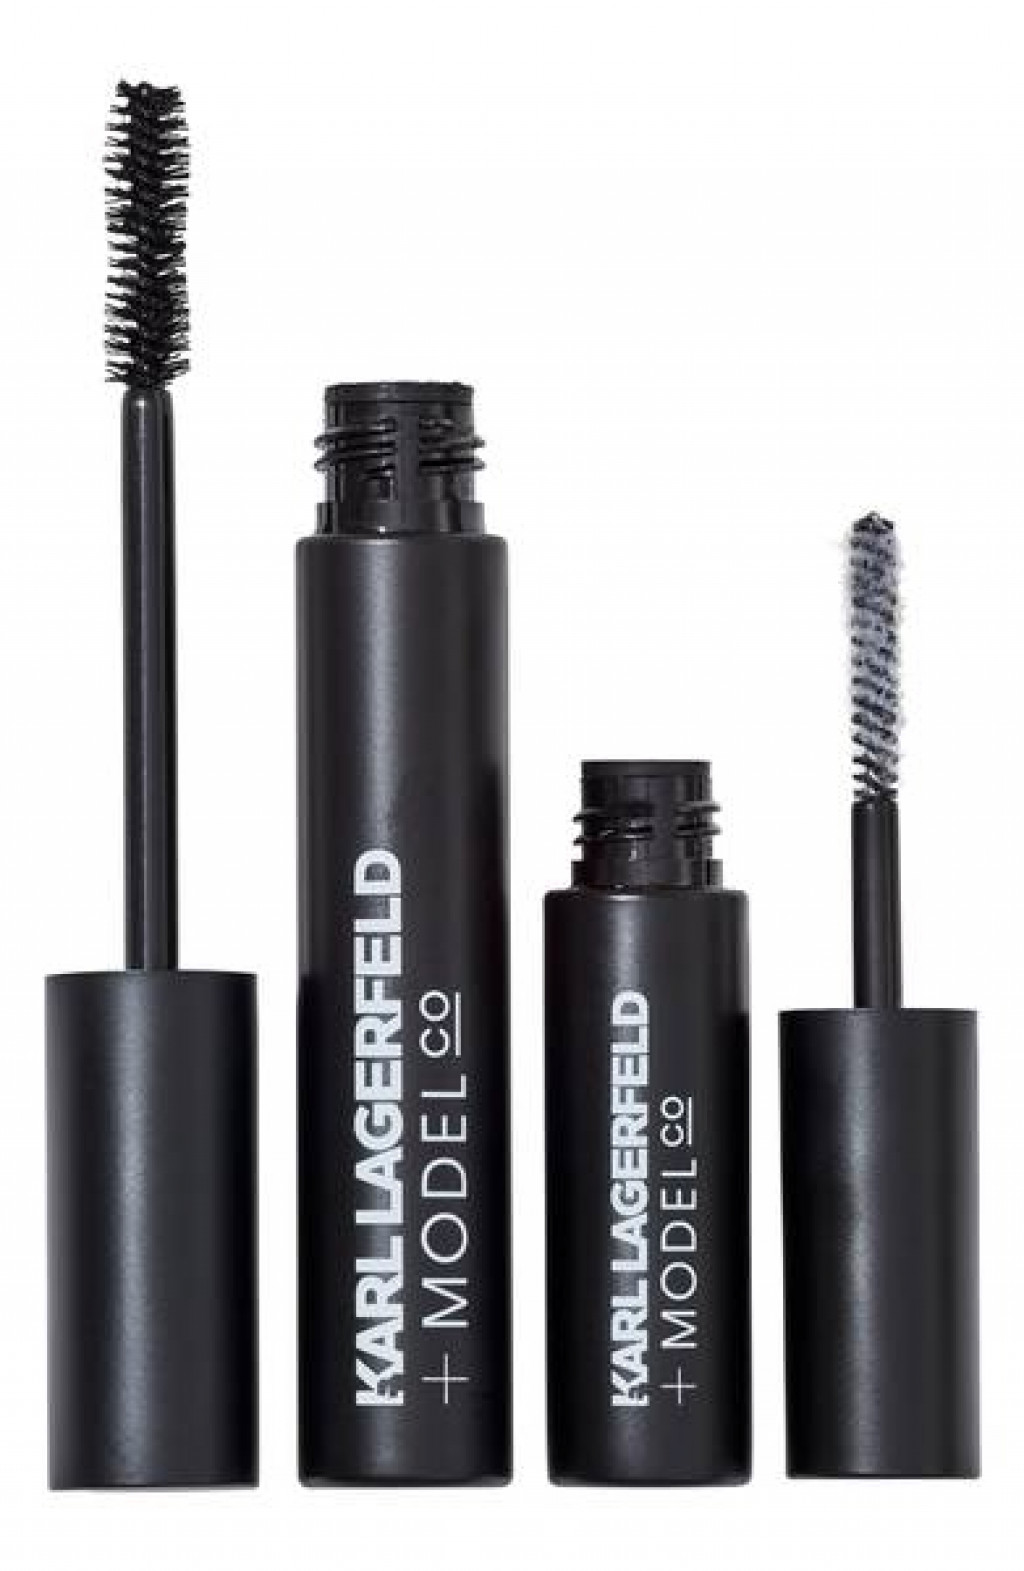 Modelco Launches A Makeup Line With Karl Lagerfeld News